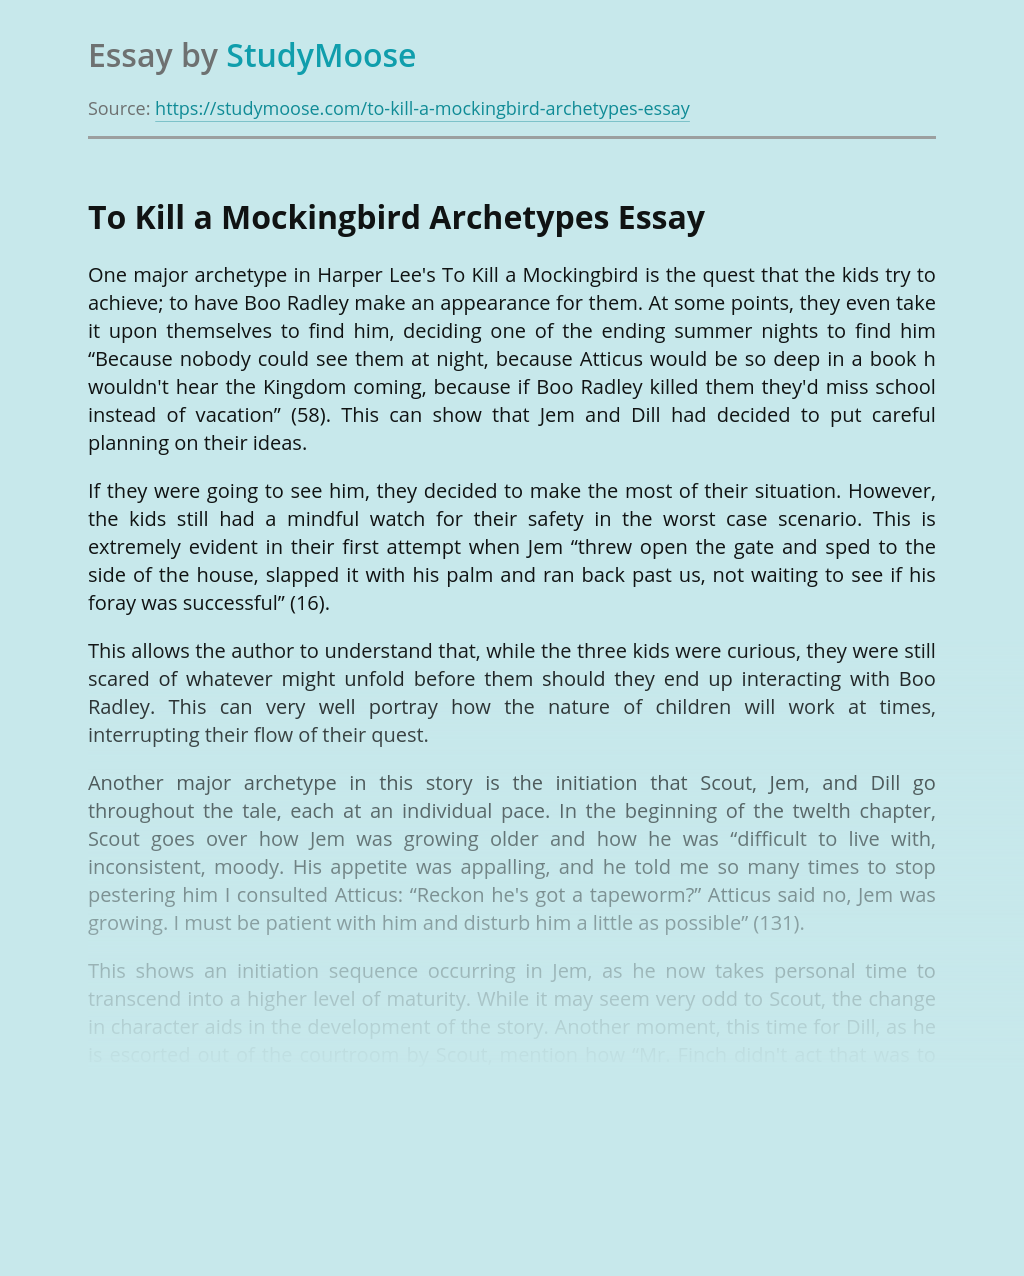 To Kill a Mockingbird Archetypes